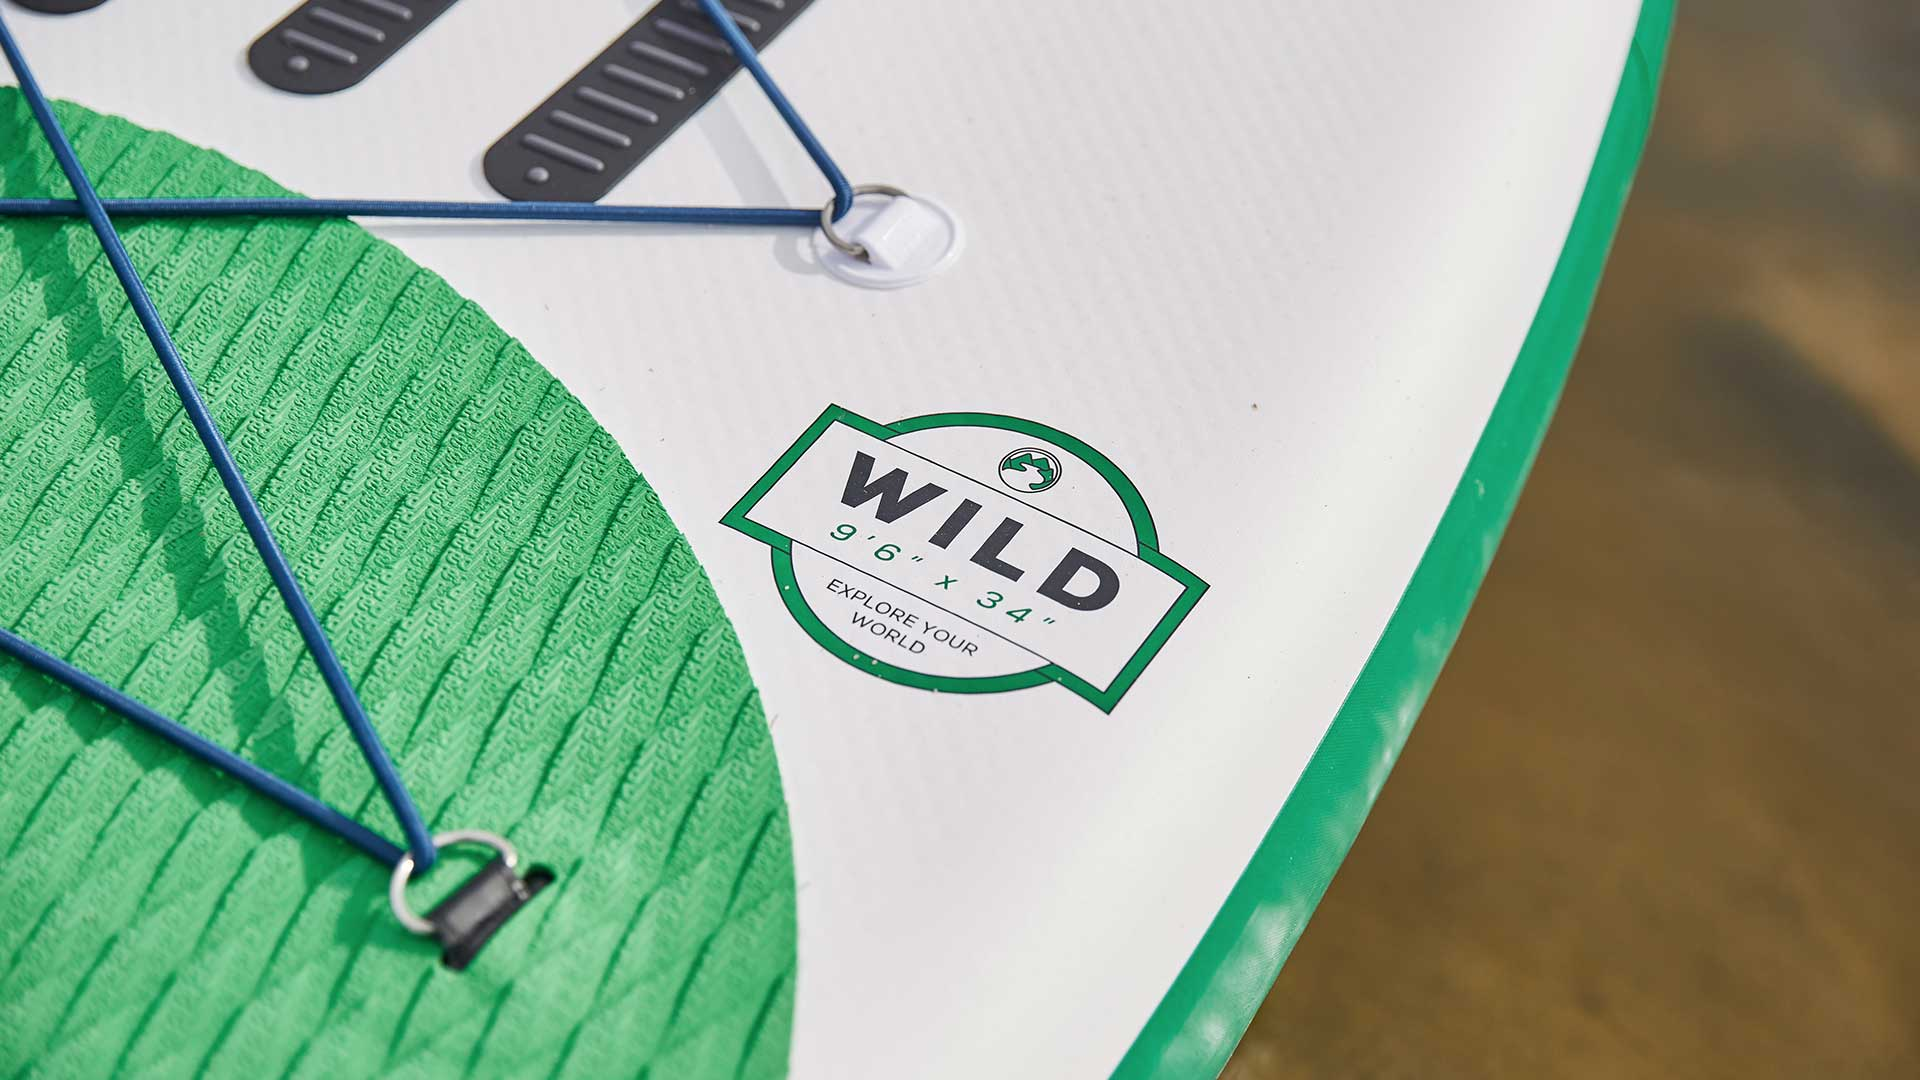 redpaddleco-96-wild-msl-inflatable-paddle-board-desktop-gallery-1